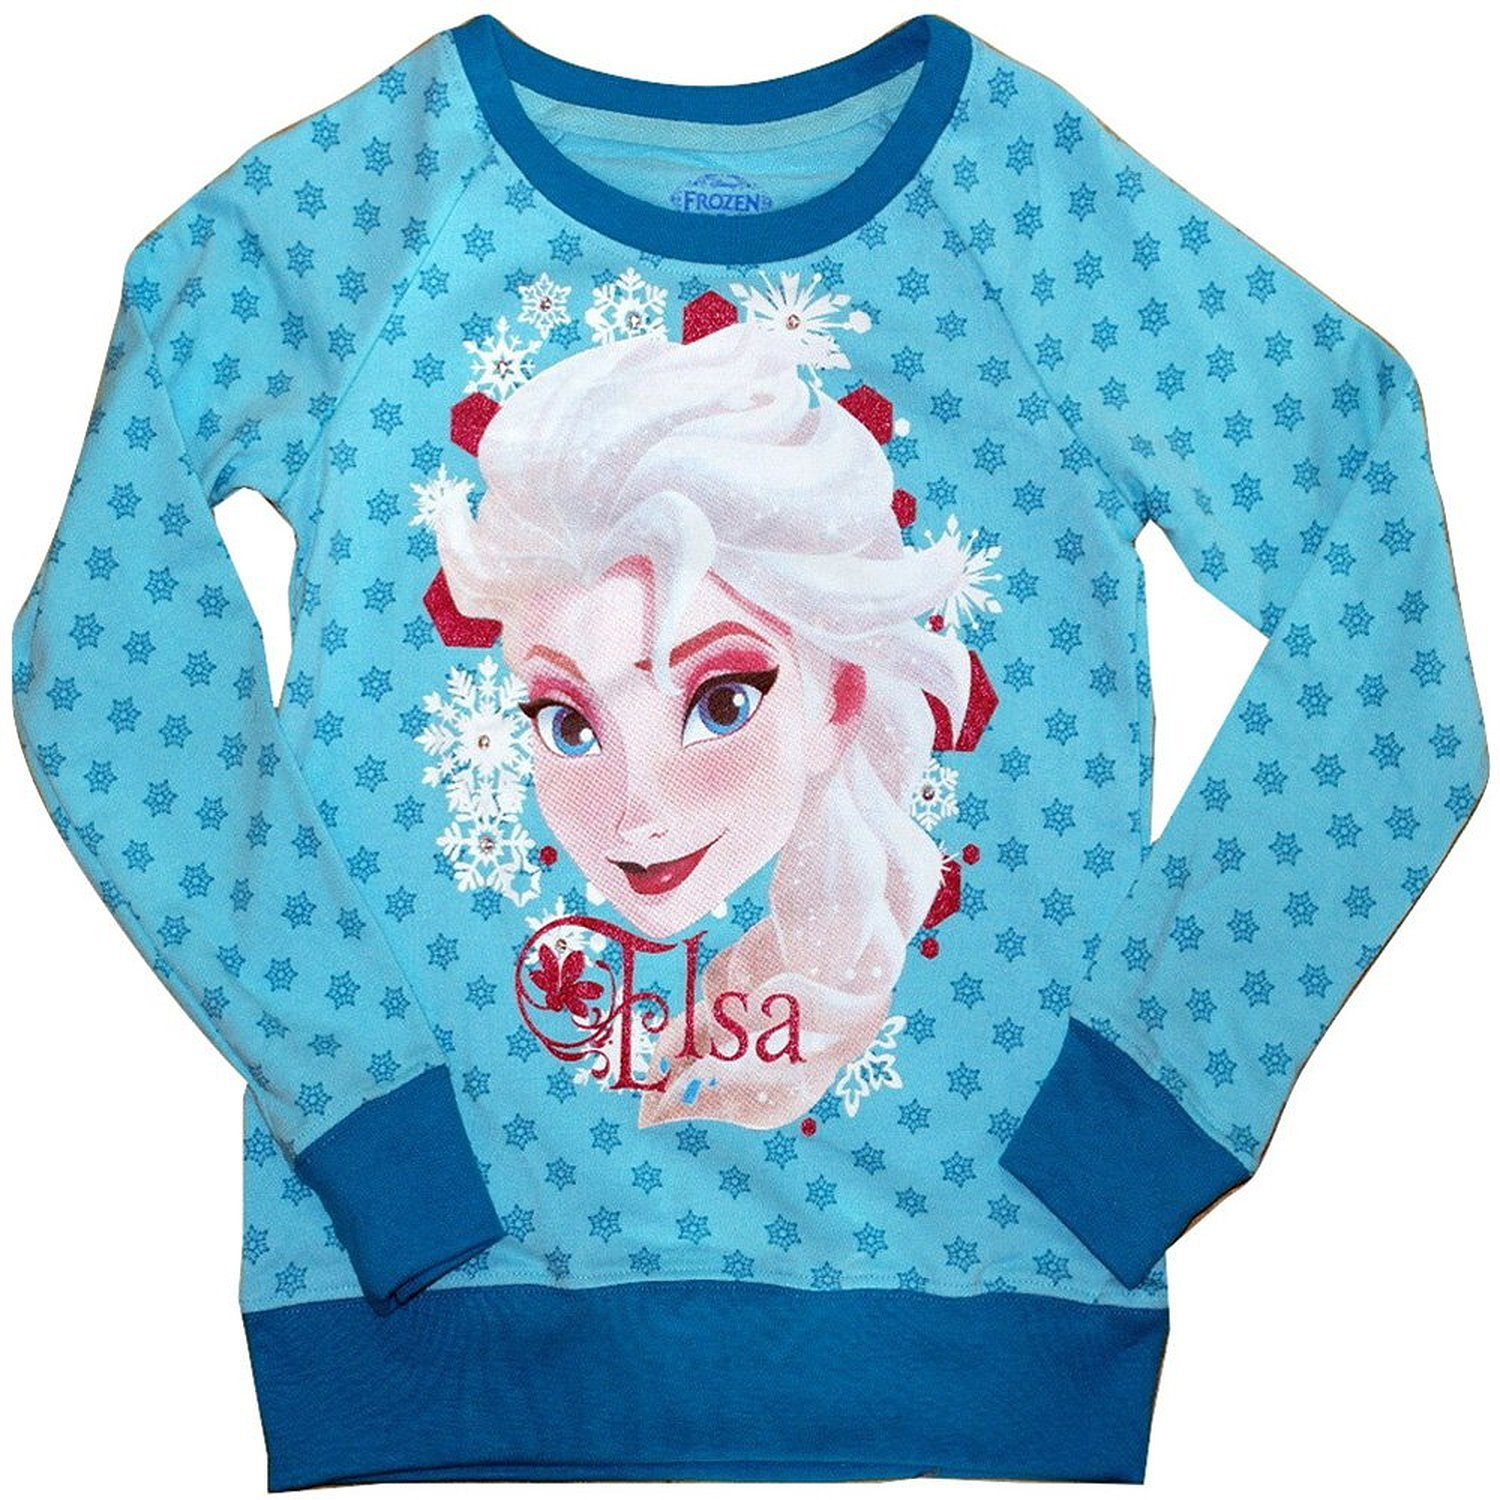 Disney Frozen Elsa Long Sleeve Shirt (Large (10-12))